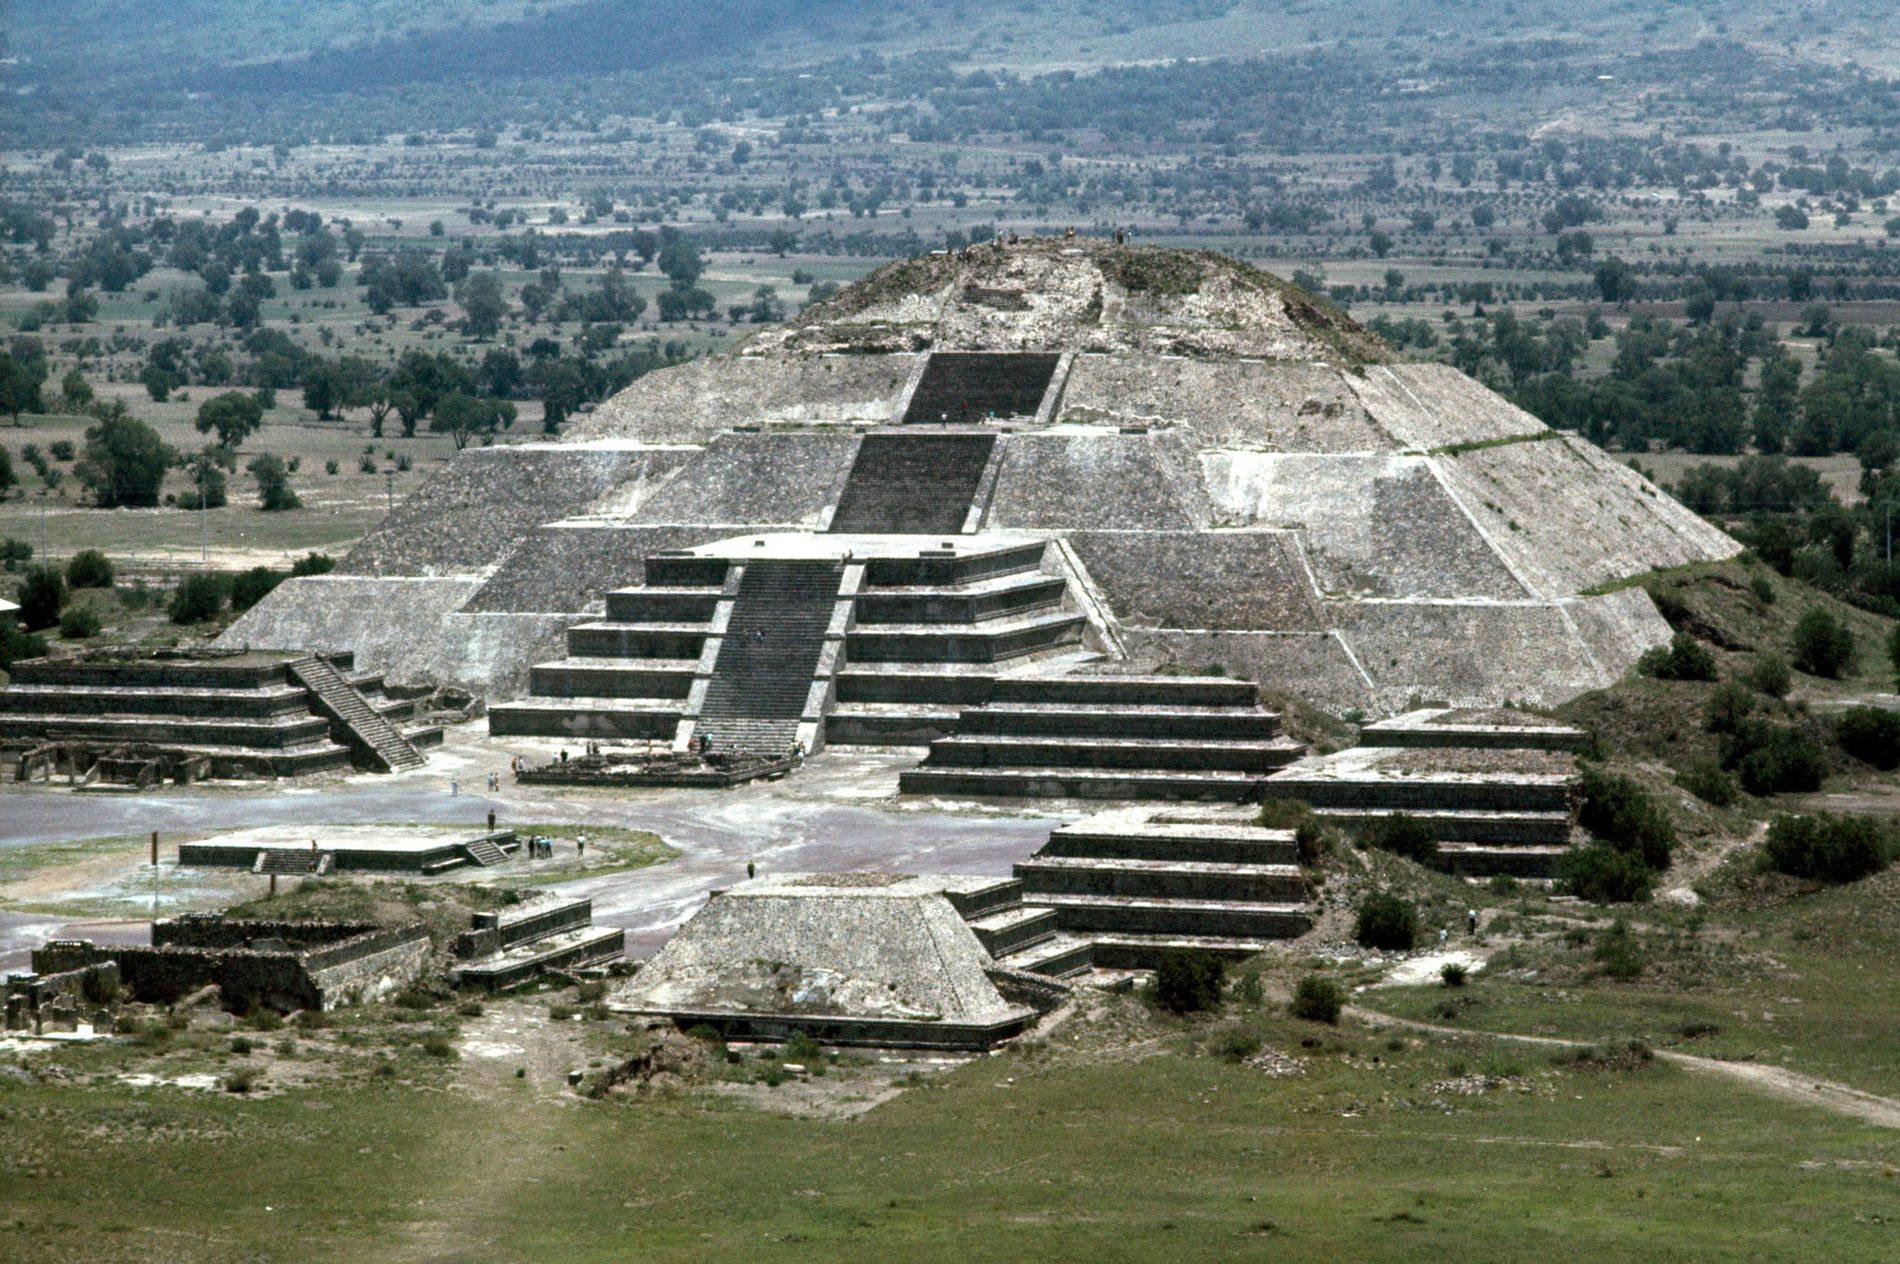 The tunnel was found under the Pyramid of the Moon and the Plaza de la Luna, the adjacent square.